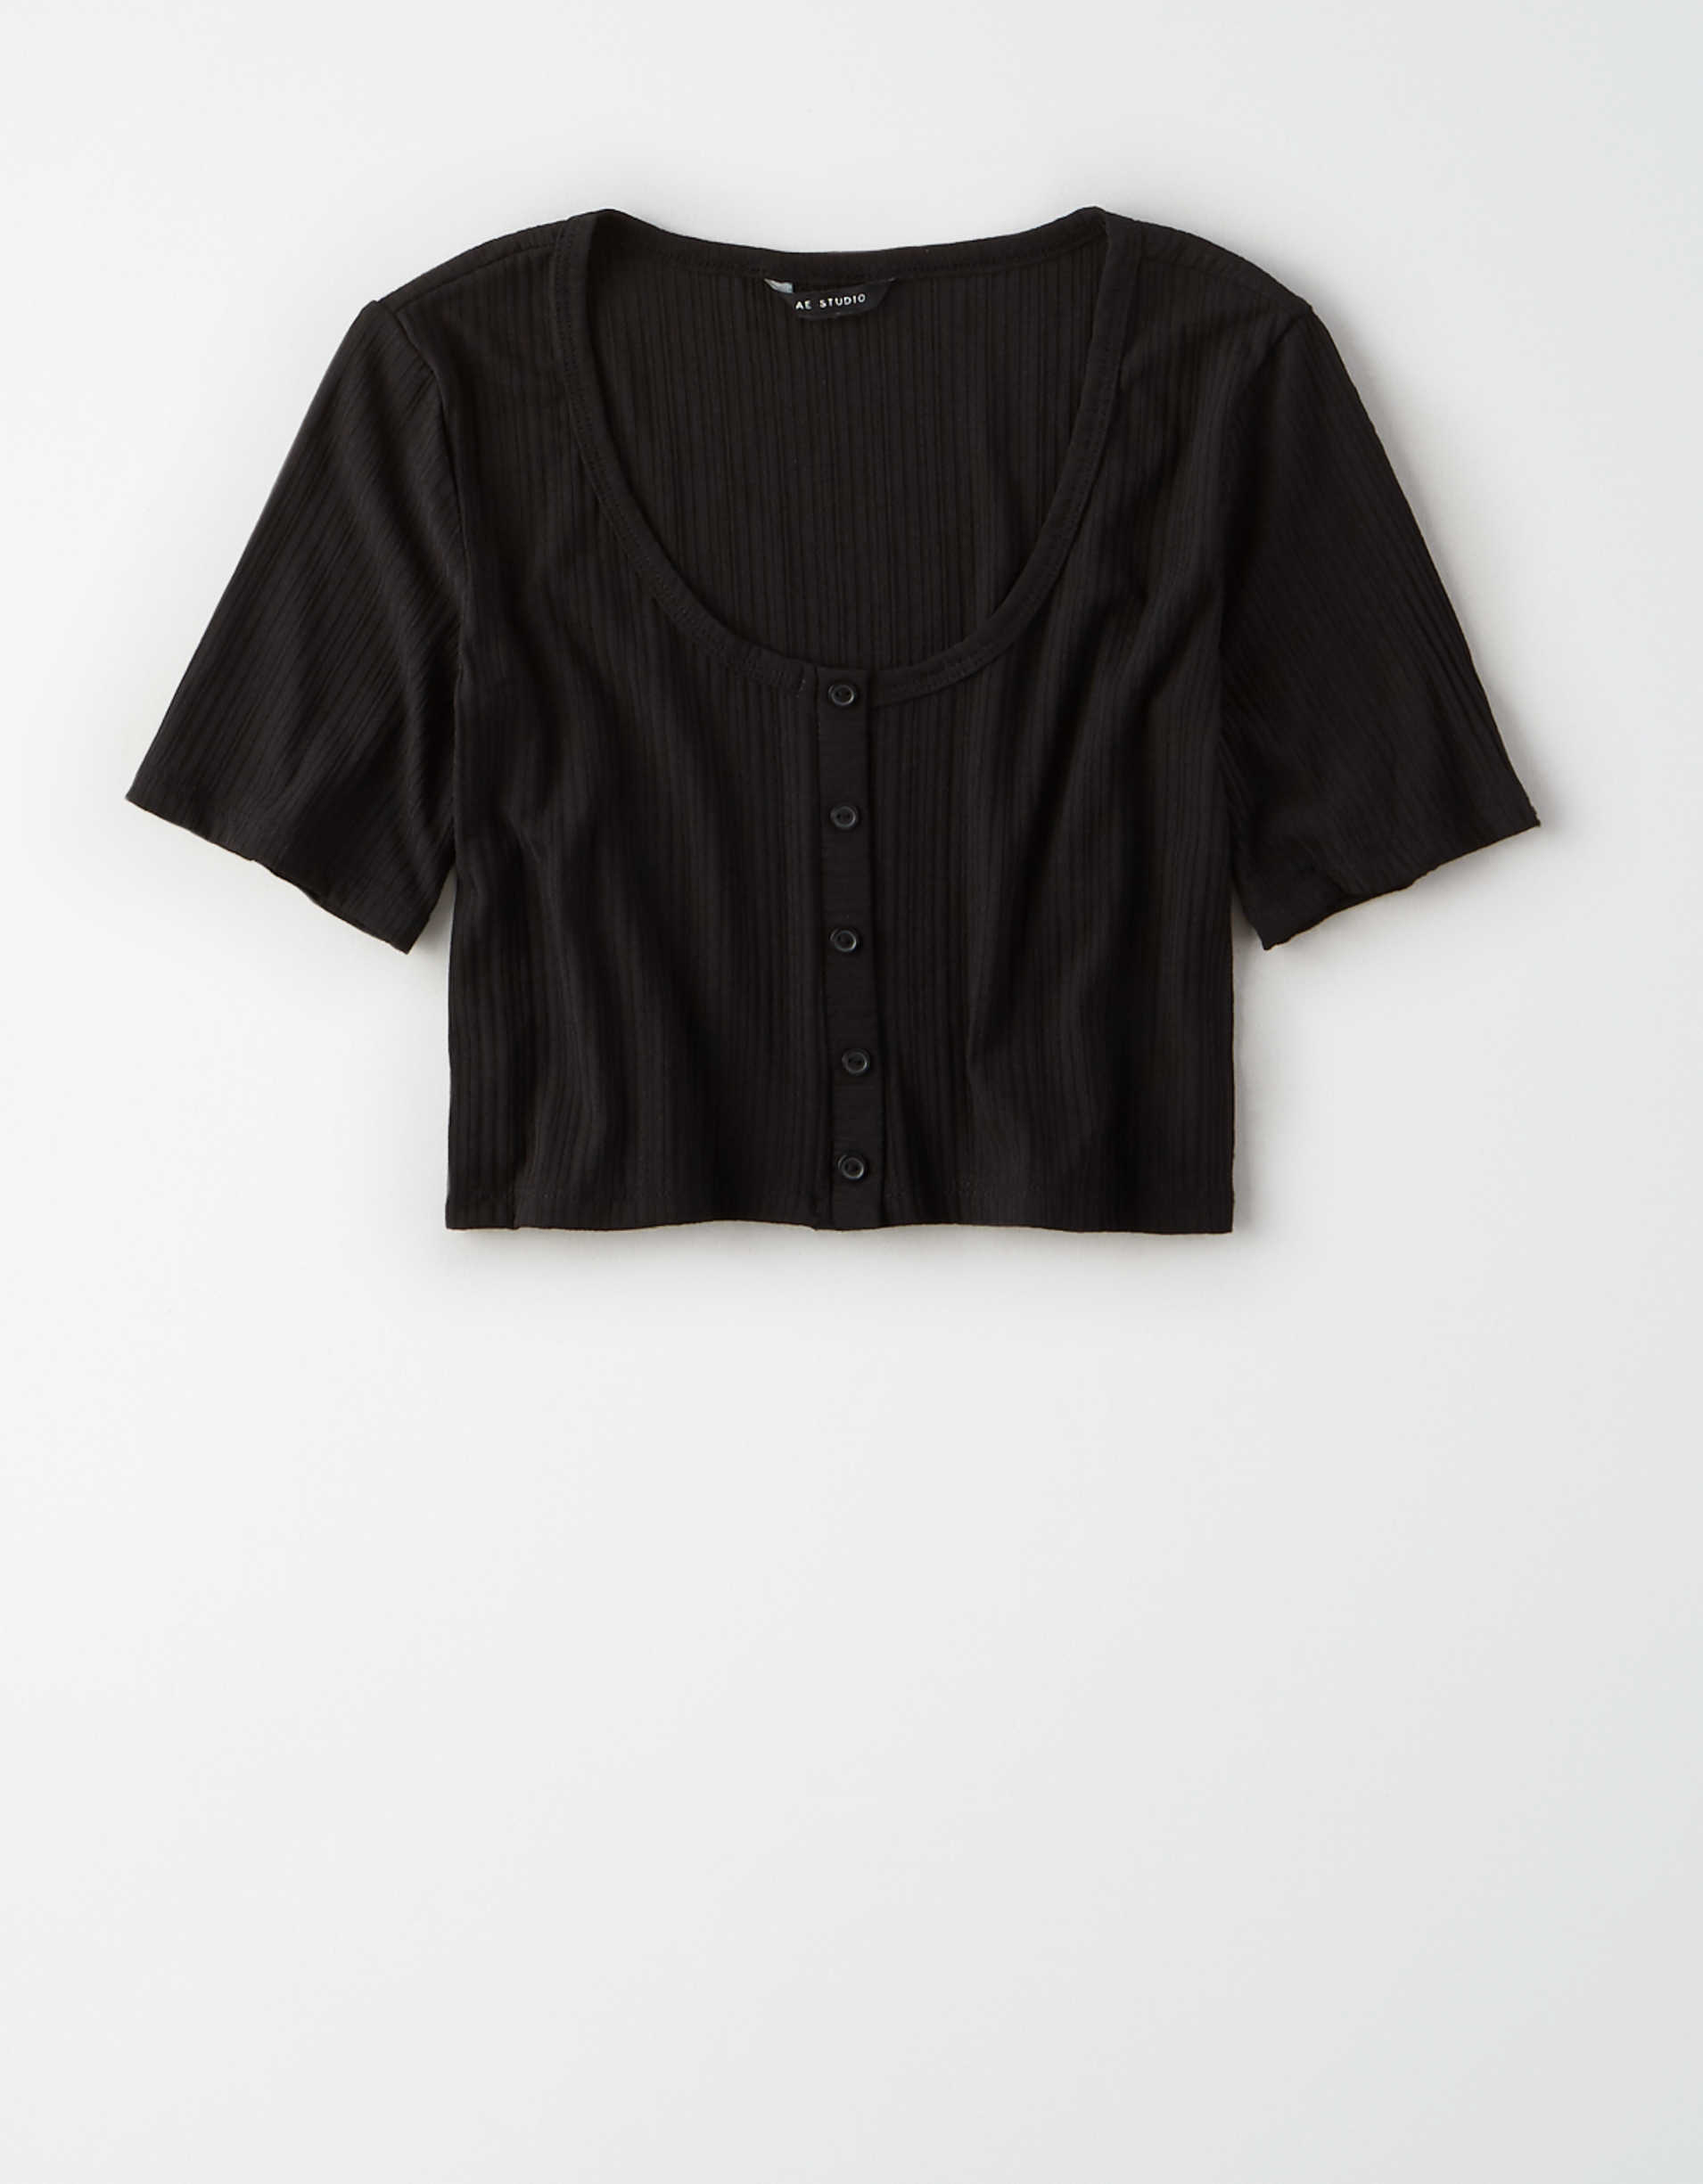 AE Studio Ribbed Button Front T-Shirt